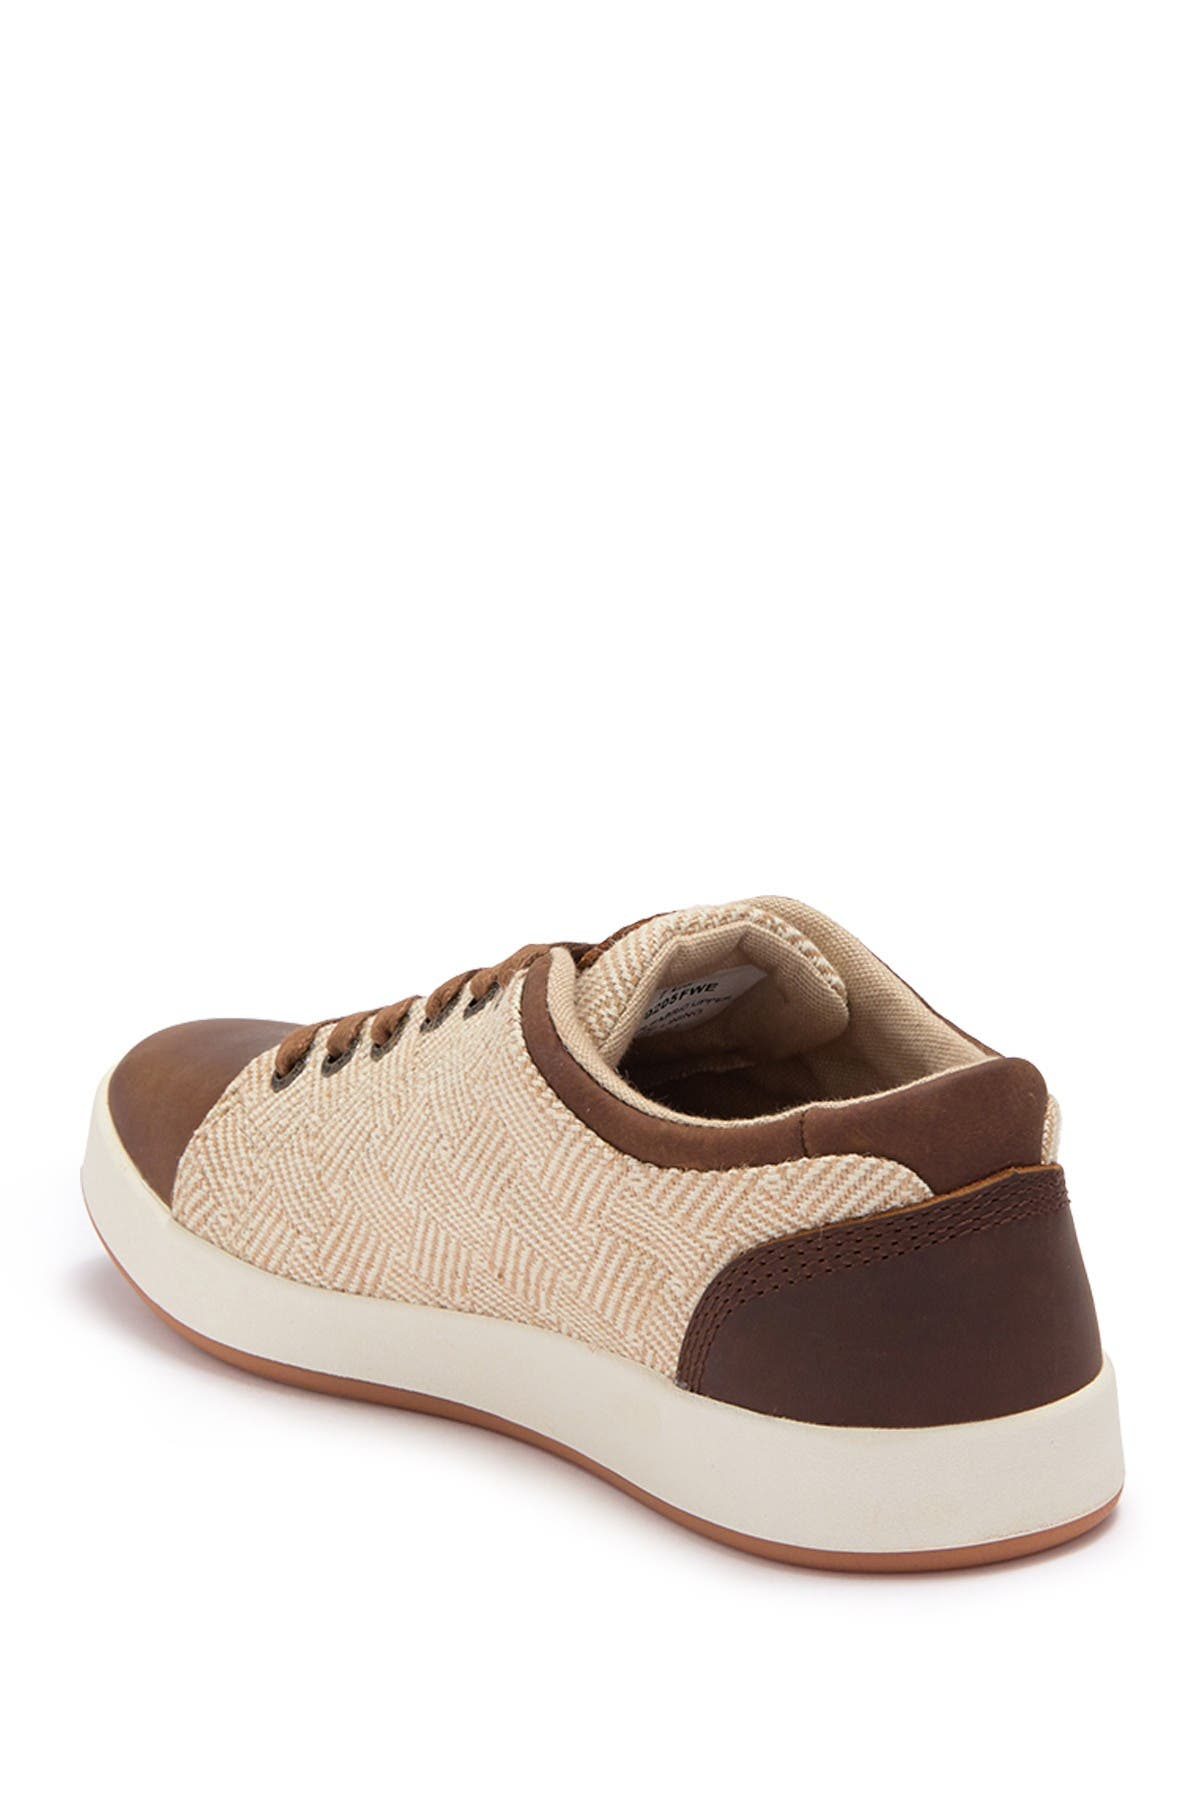 Image of Kodiak Indra Traction Textile Sneaker